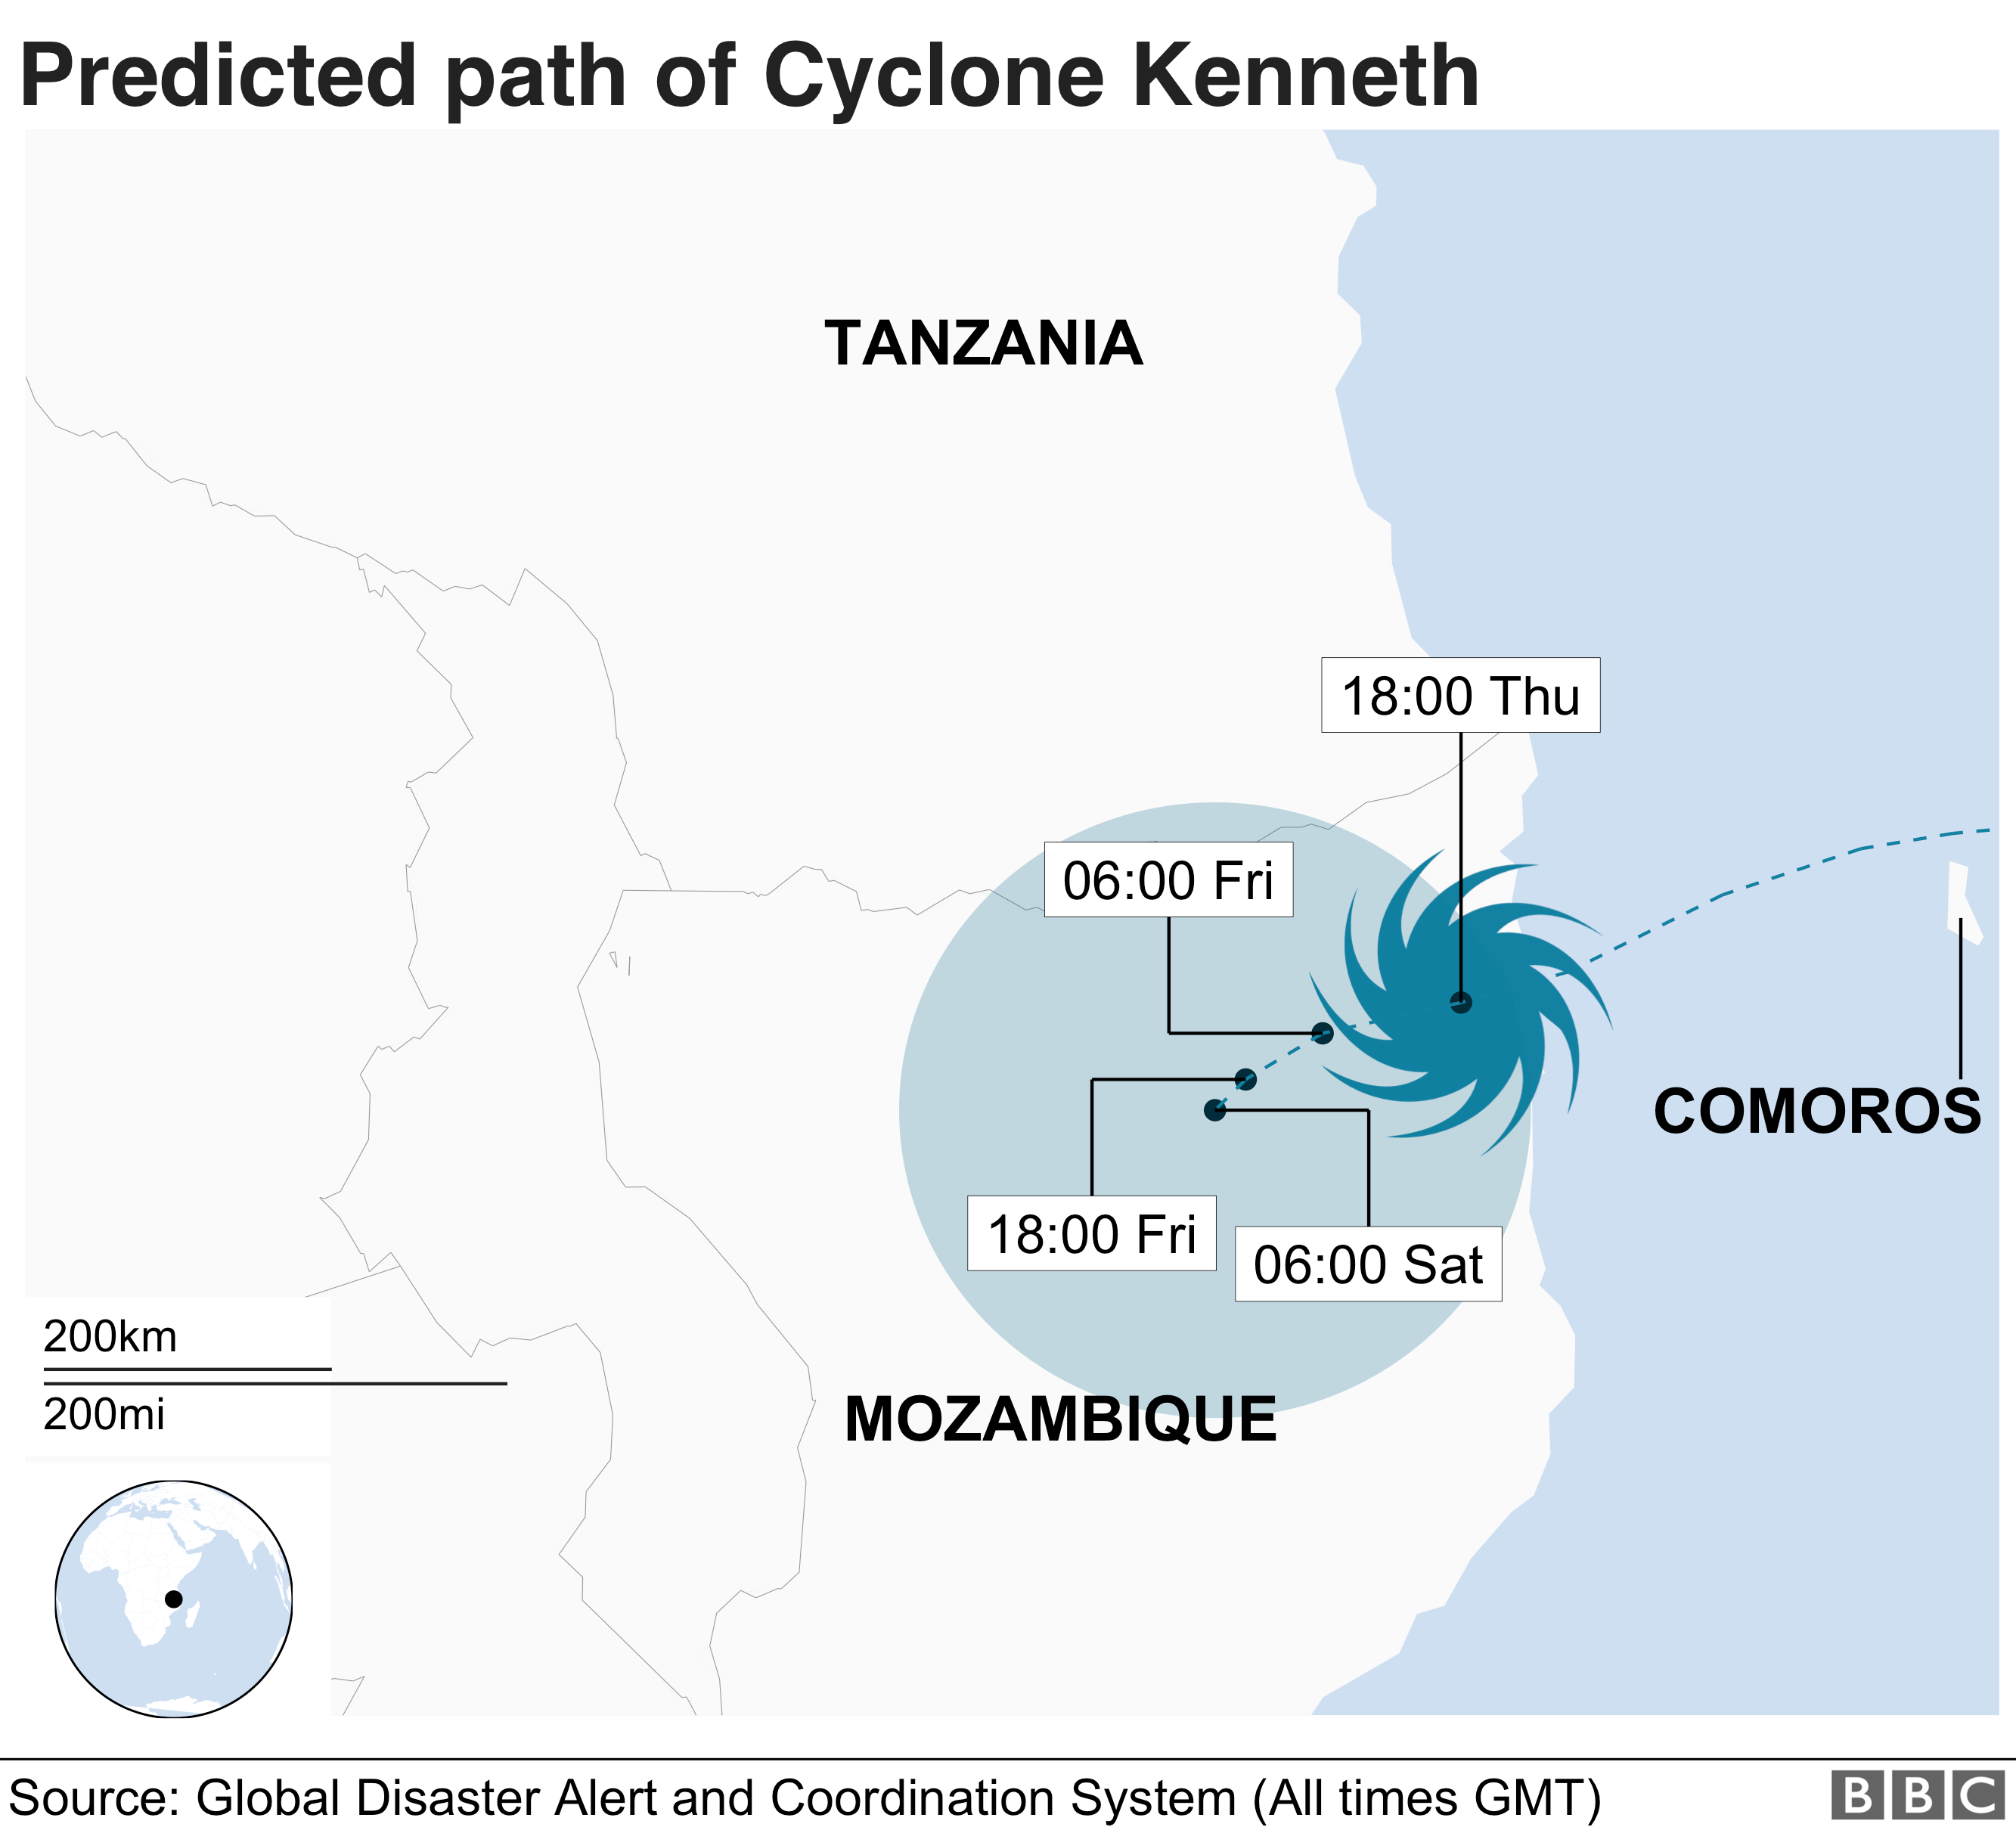 Map showing the predicted path of Cyclone Kenneth